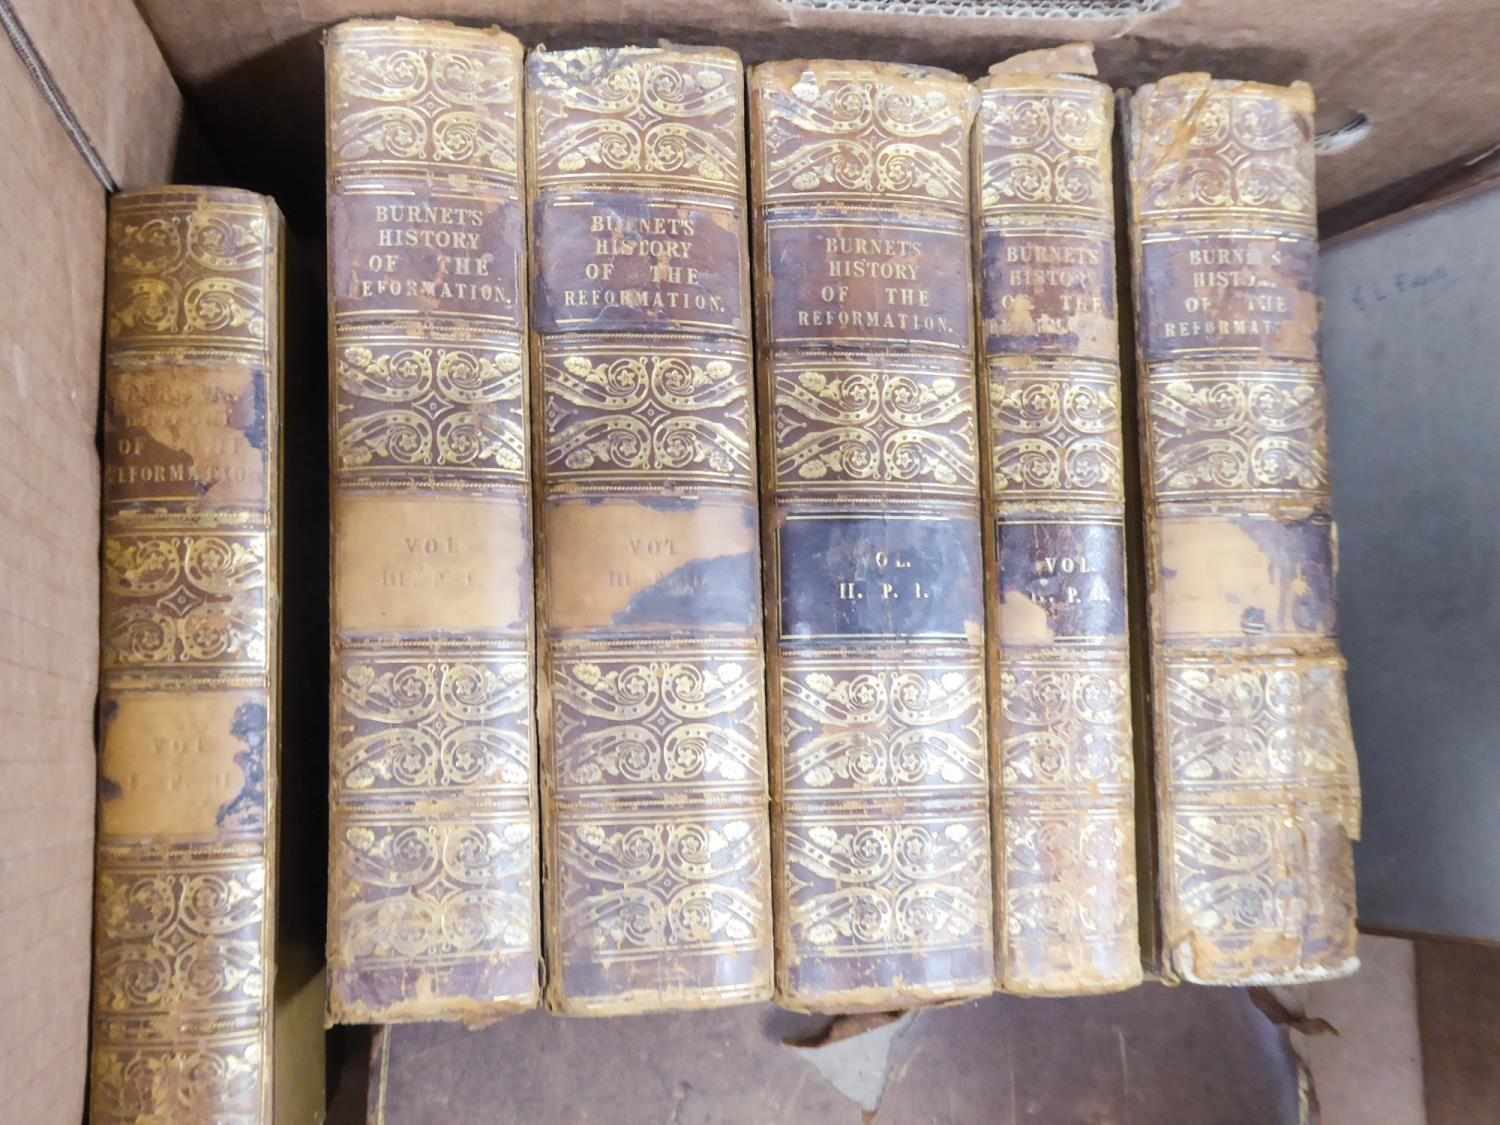 BISHOP R BURNET, THE HISTORY OF THE REFORMATION, 6 volumes (3 volumes, 2 parts per volume),